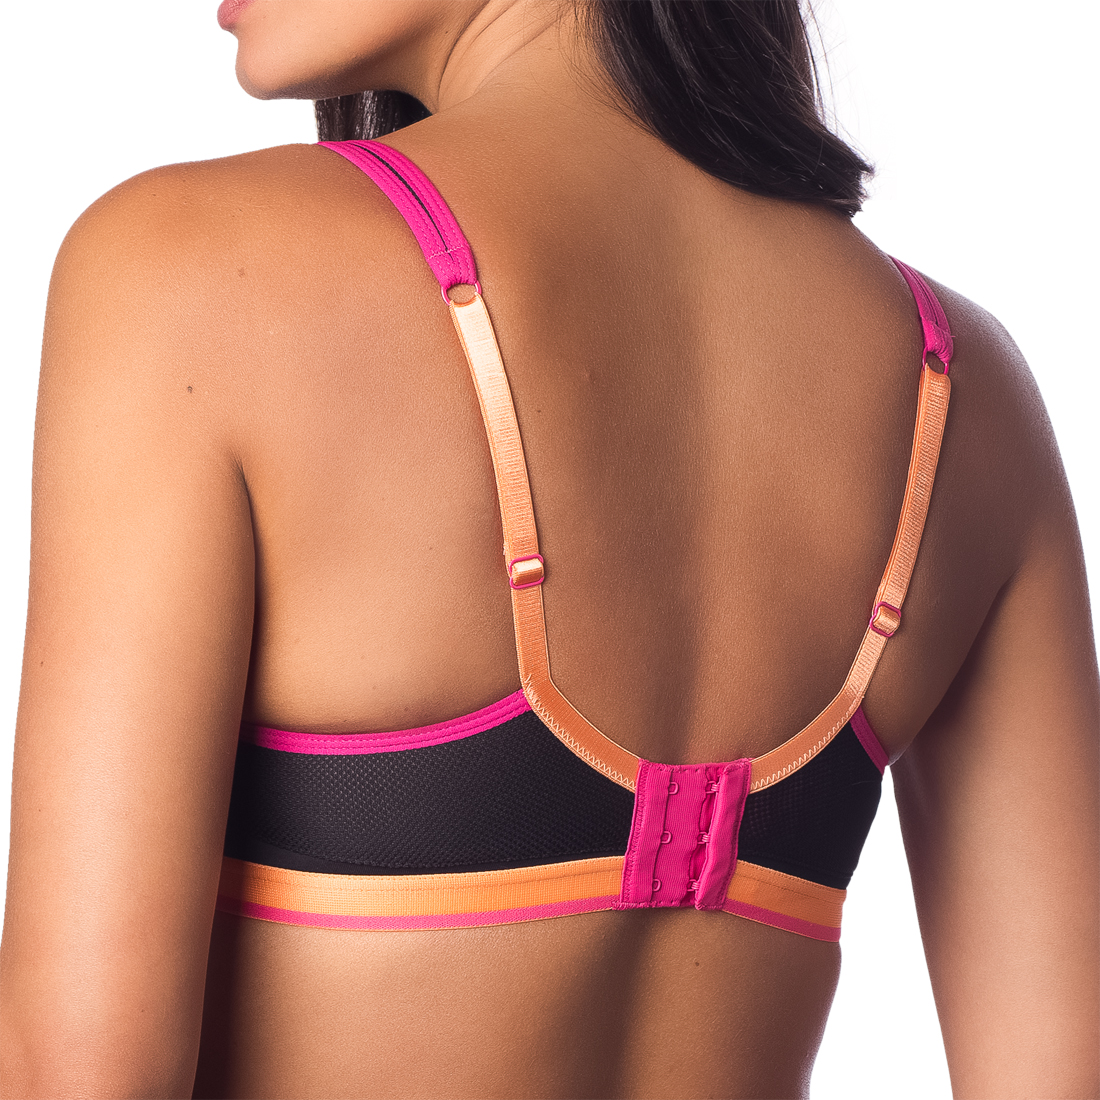 Activate Sports Flexiwire Nursing Bra